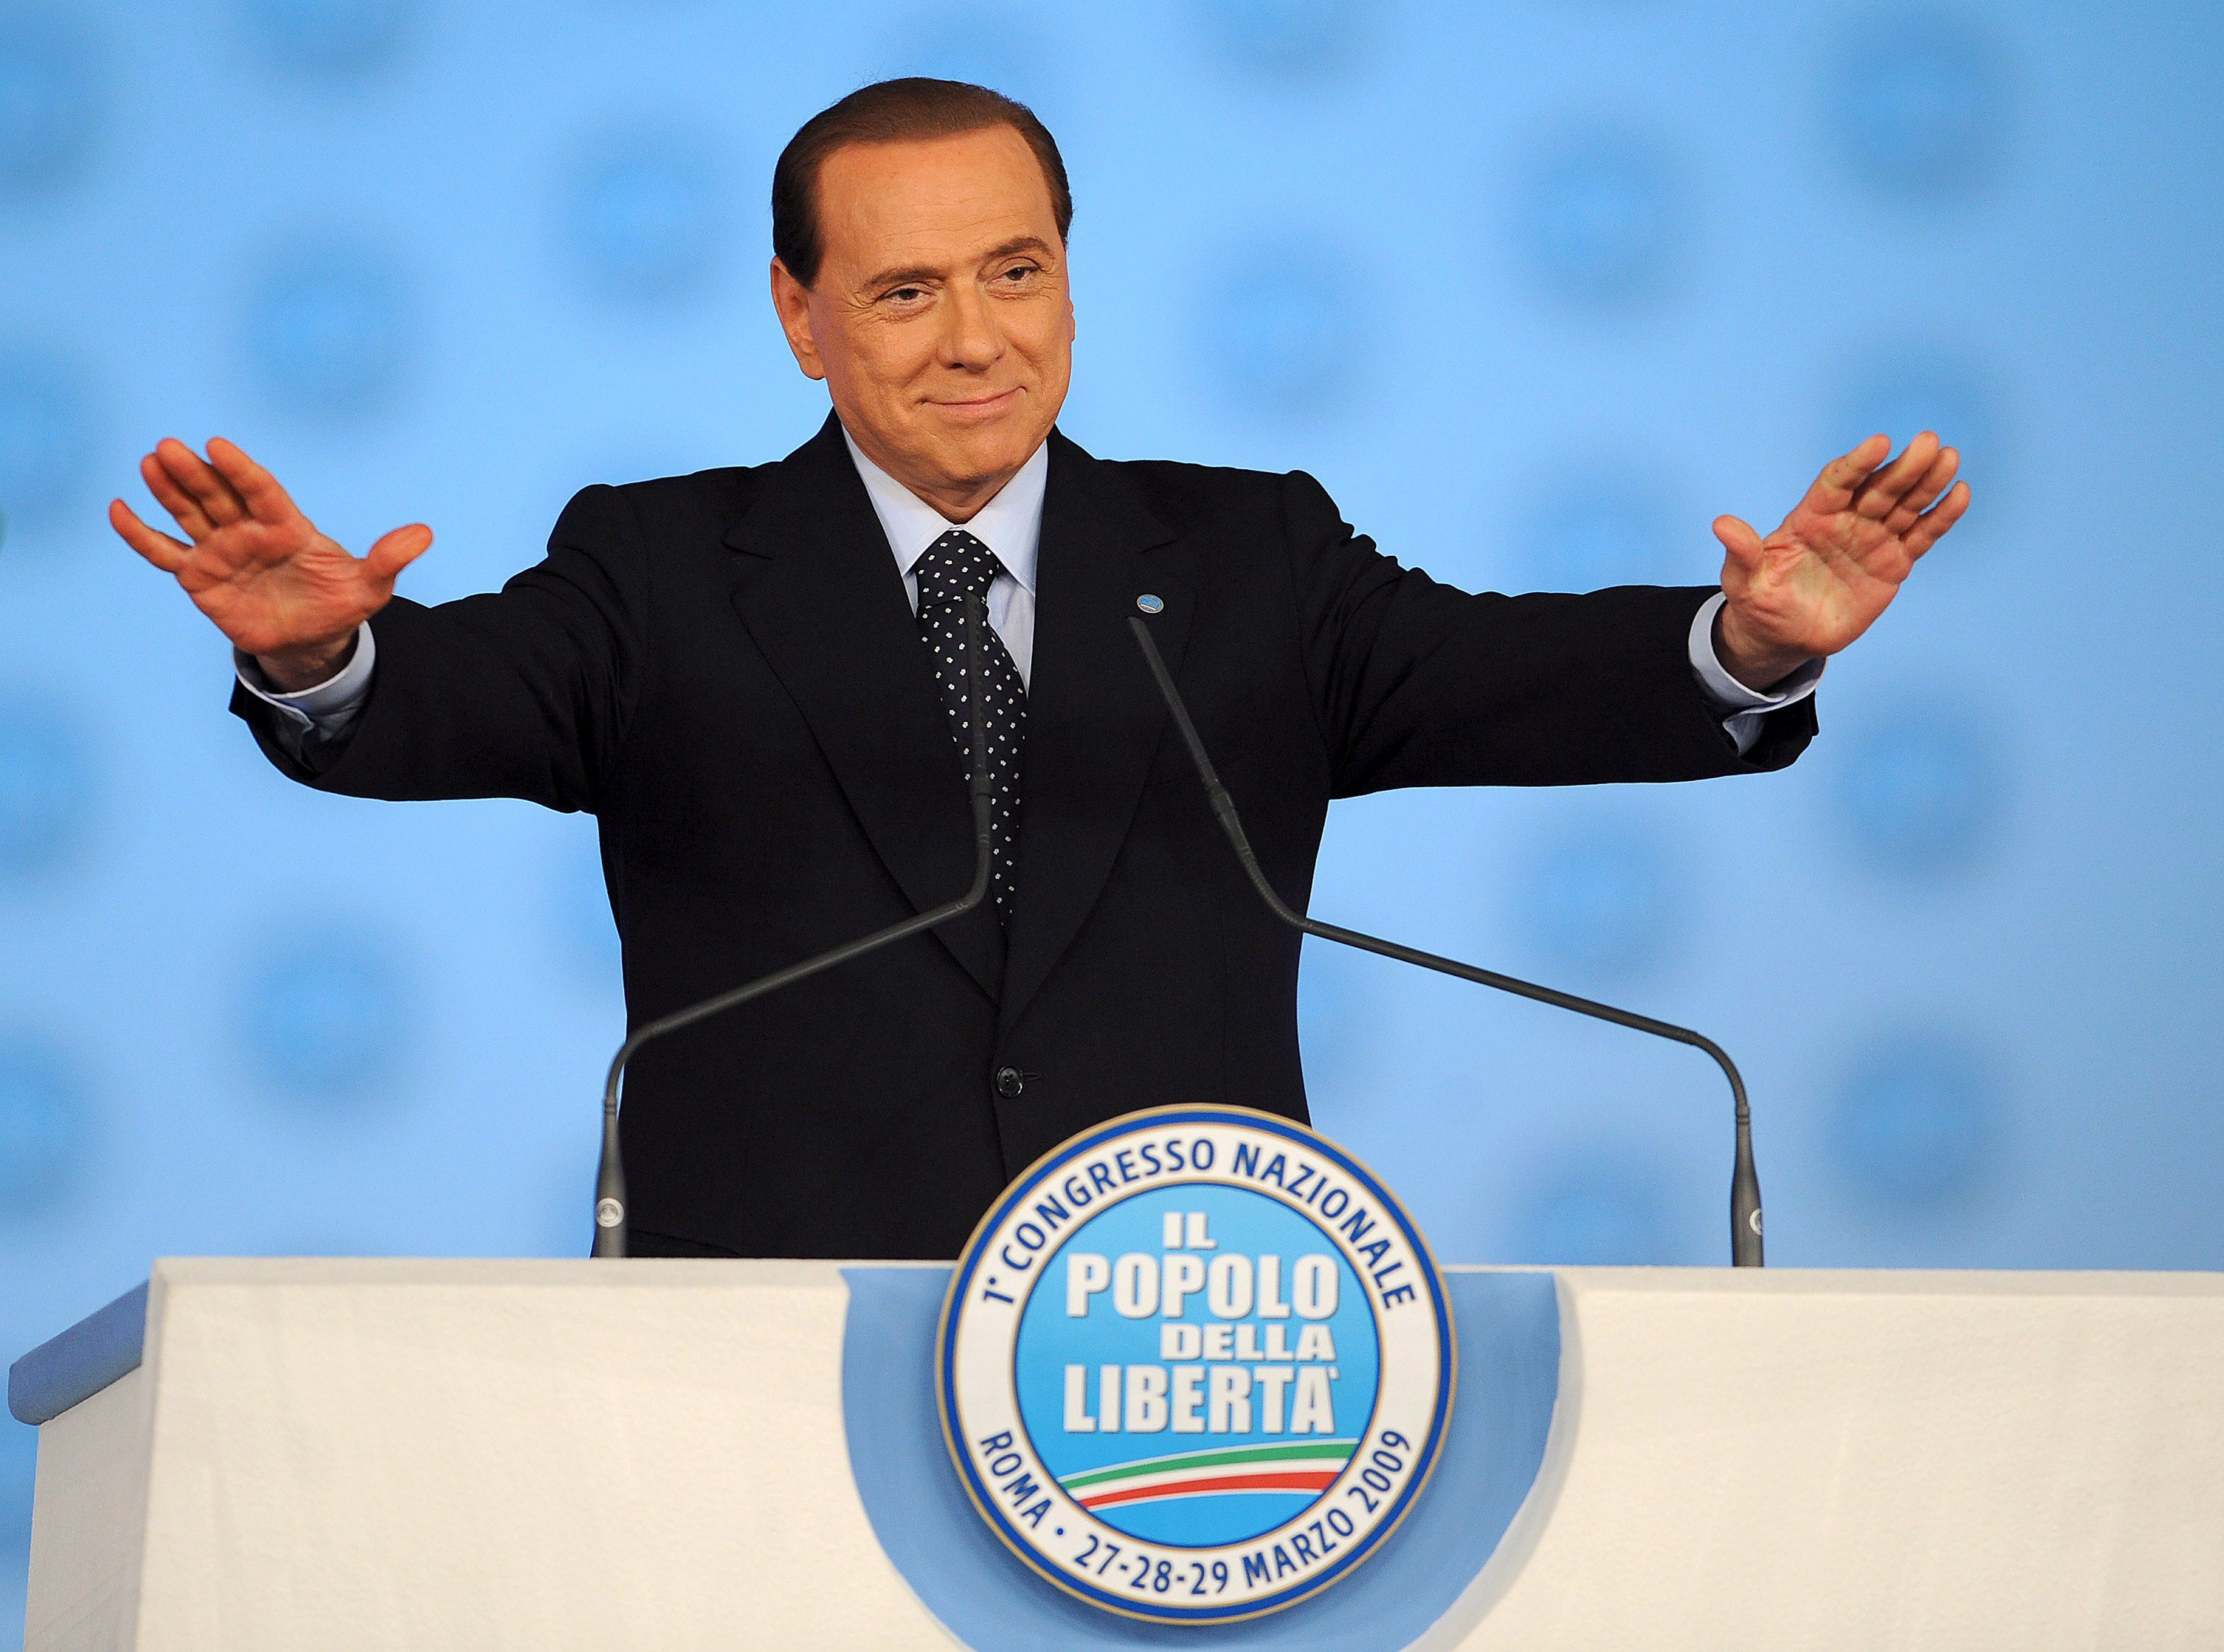 Berlusconi address